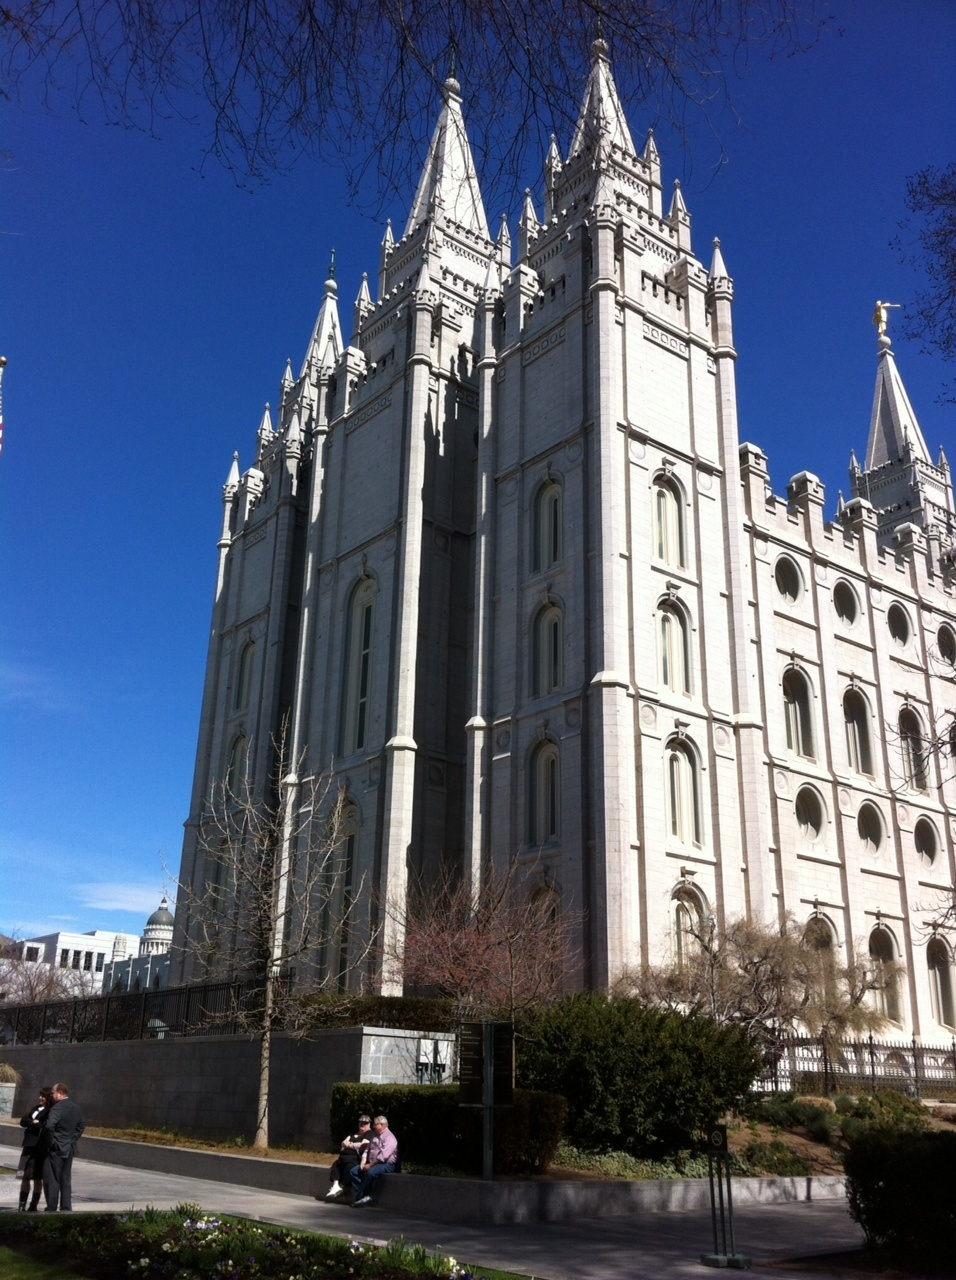 The Temple is the centre piece of a multi-block campus of LDS buildings that is their corporate headquarters.